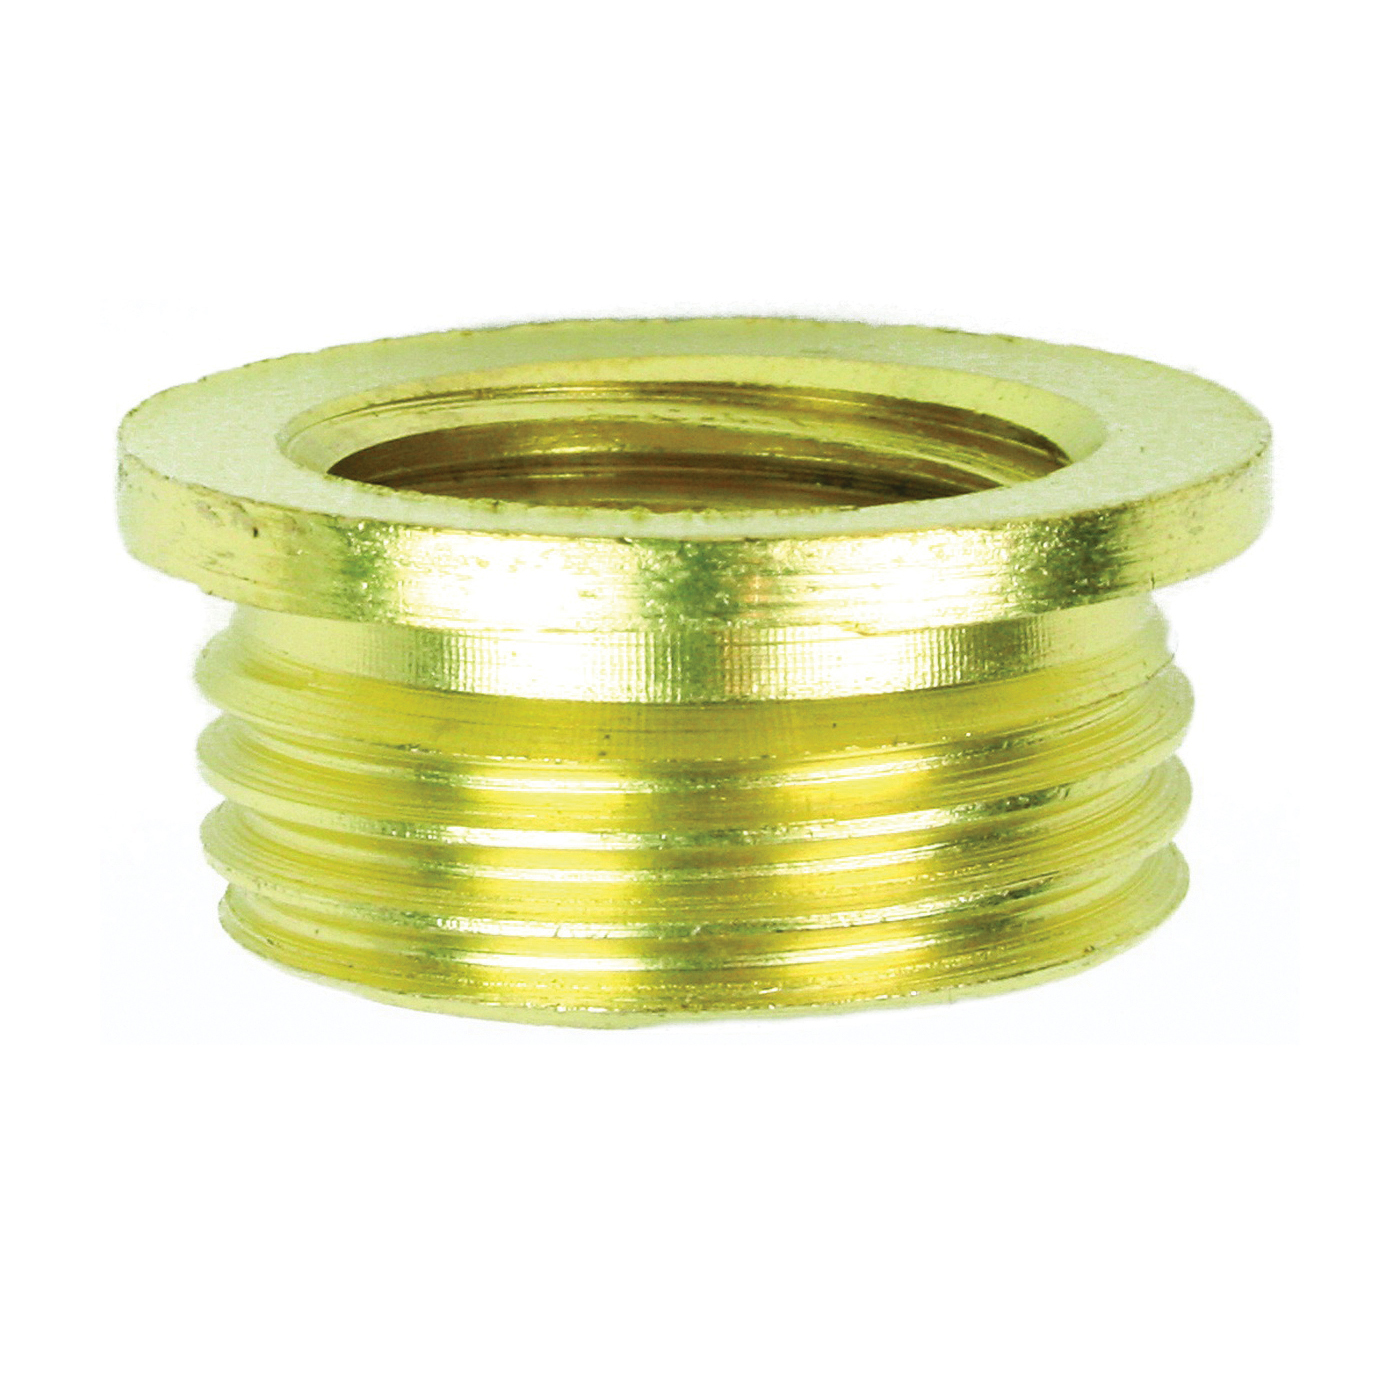 Picture of Jandorf 60148 Lamp Reducer, Brass